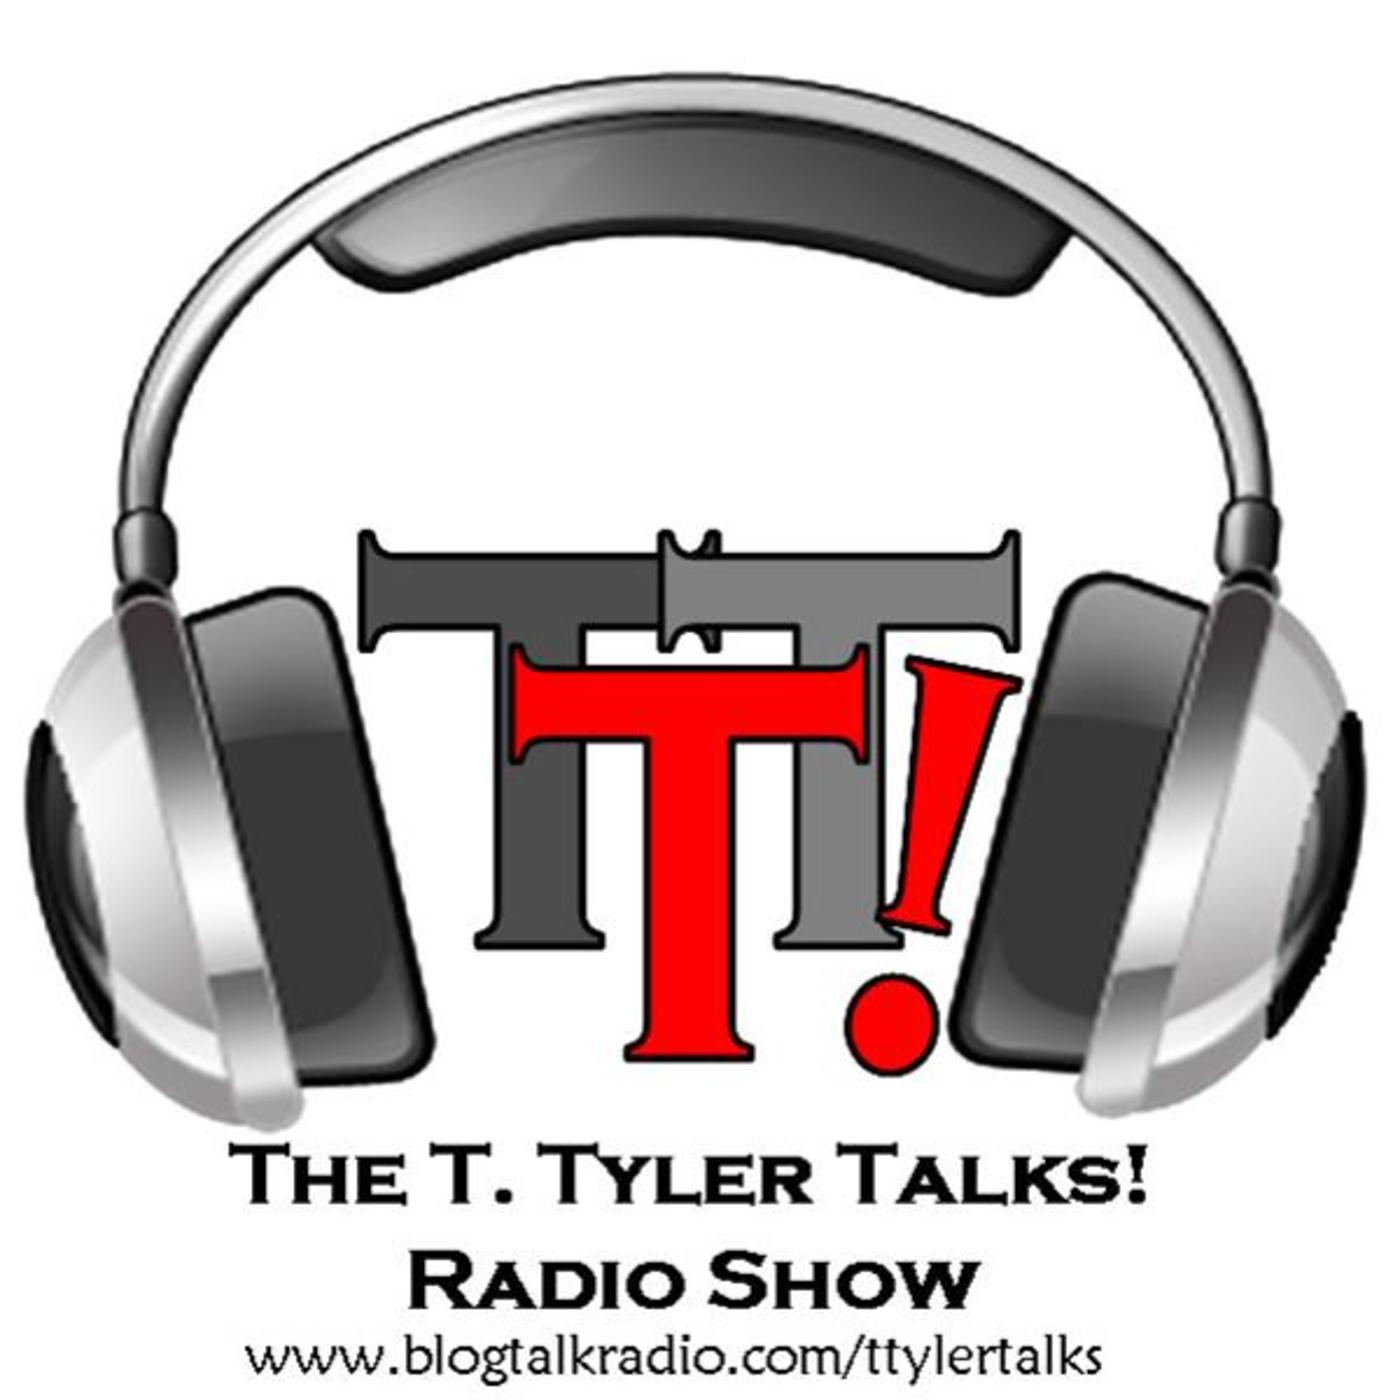 T. Tyler Talks